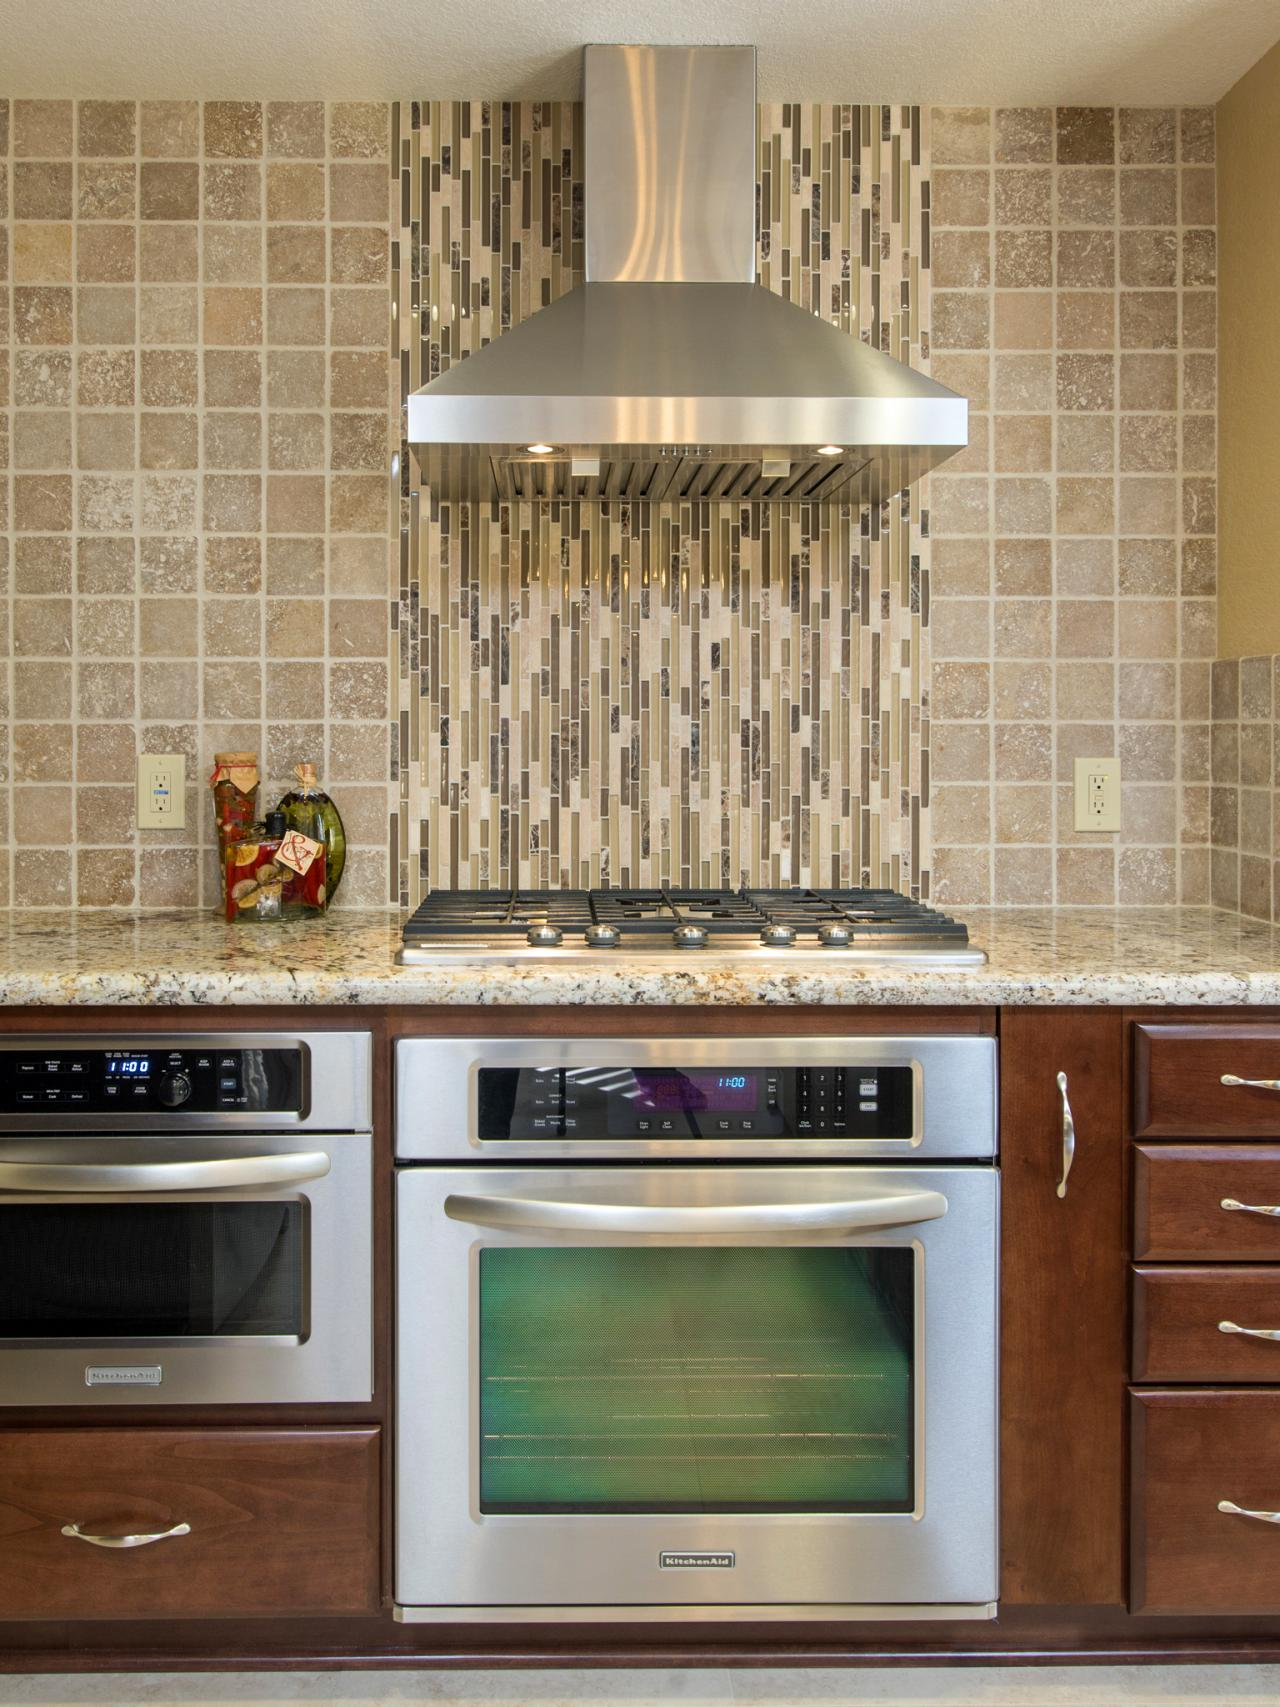 Glass And Natural Stone Tile Kitchen Backsplash This Kitchen S Designer Chose To Install Glass